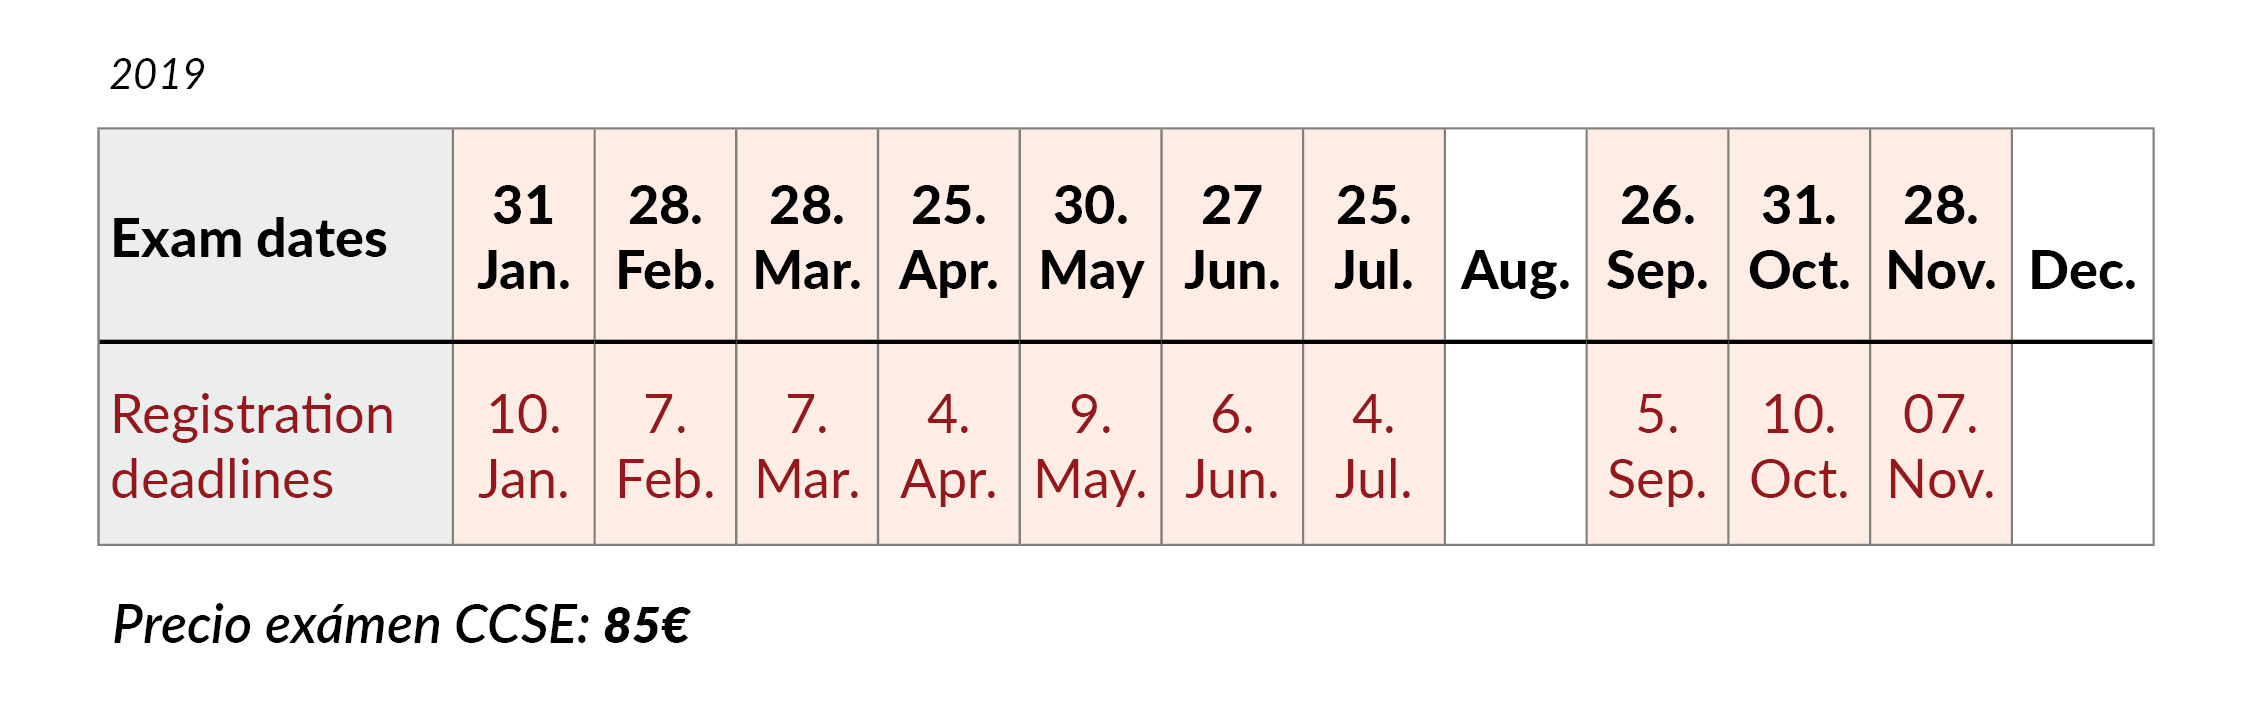 CCSE exam dates 2019